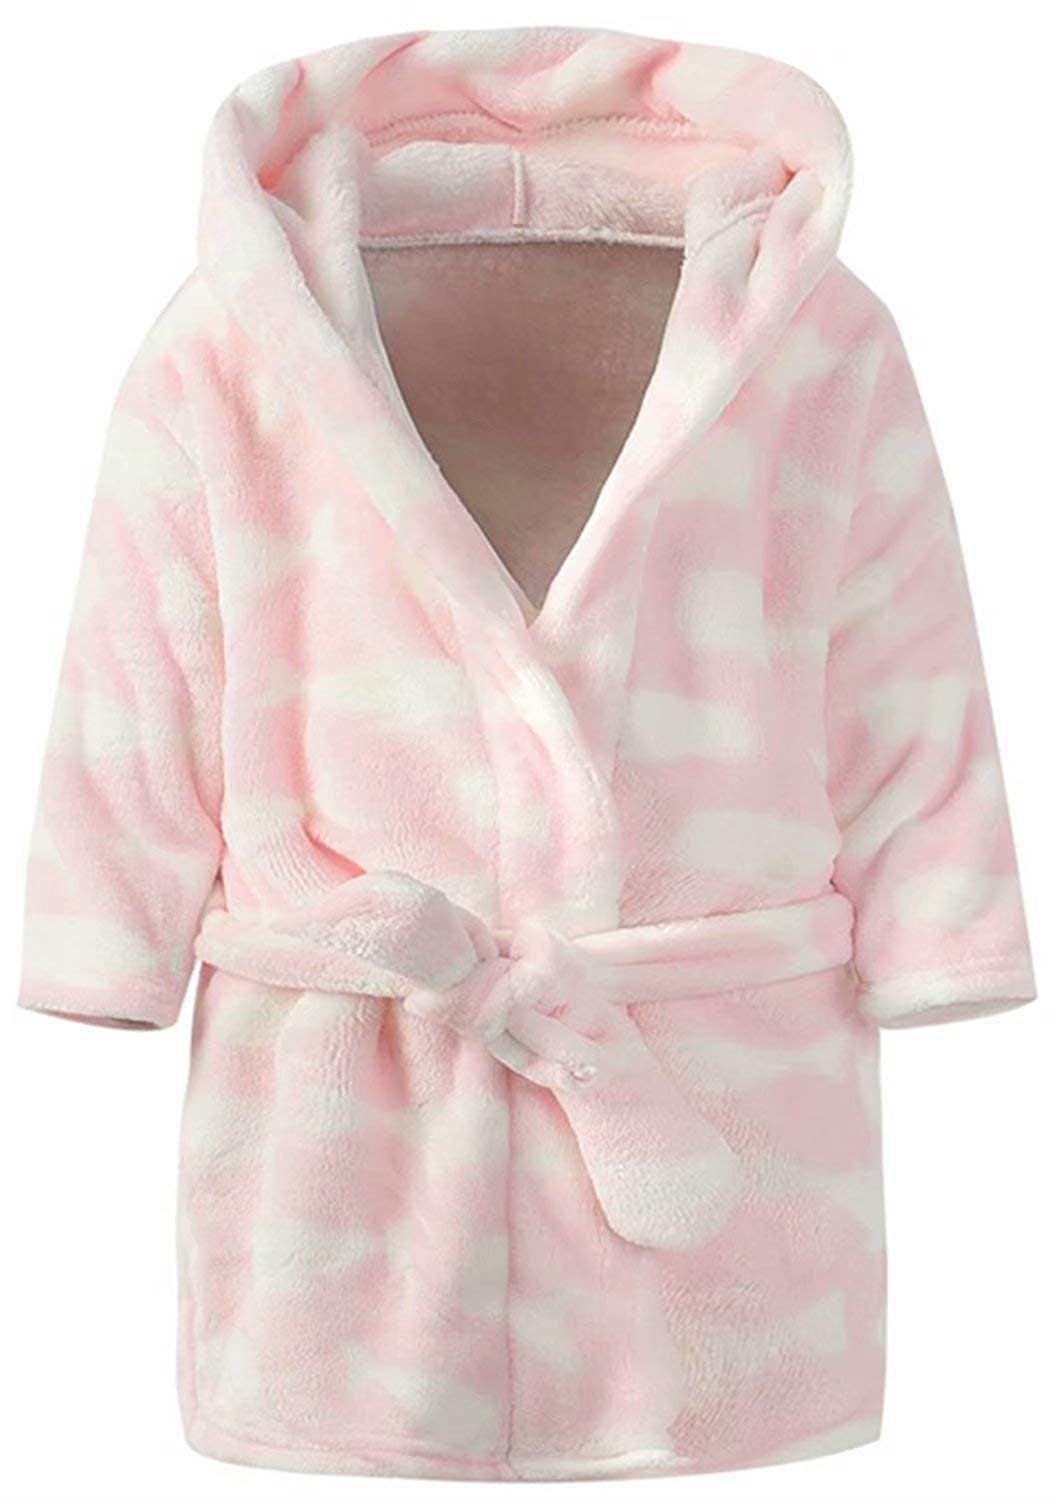 Ameyda Unisex Children's Flannel Bathrobes Hoodie 1 Years 13 Years